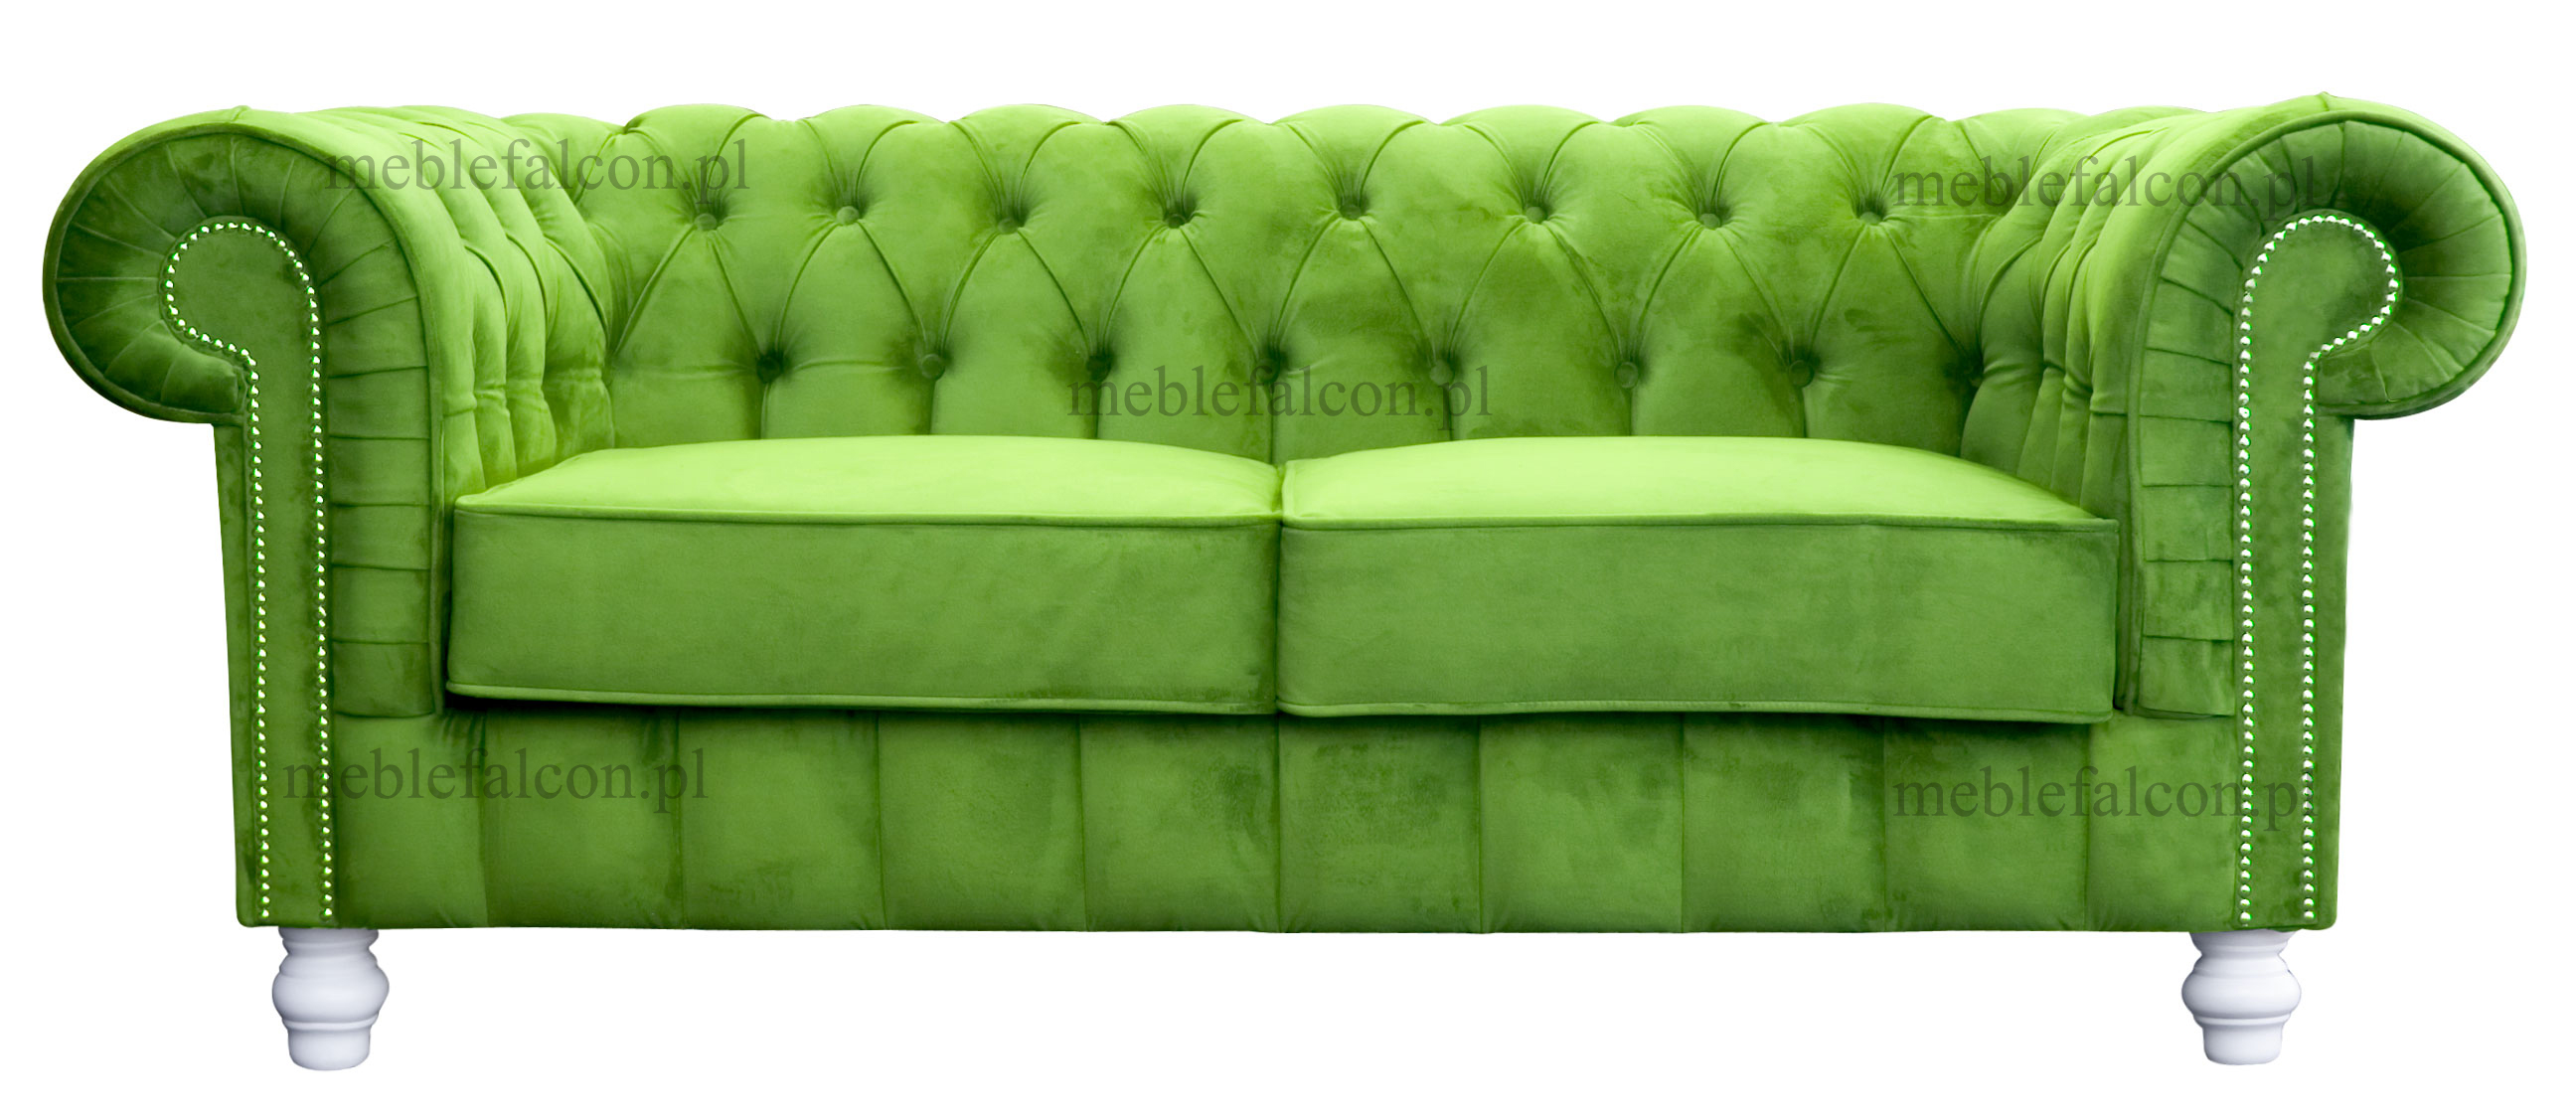 sofa chesterfield pikowana pluszowa